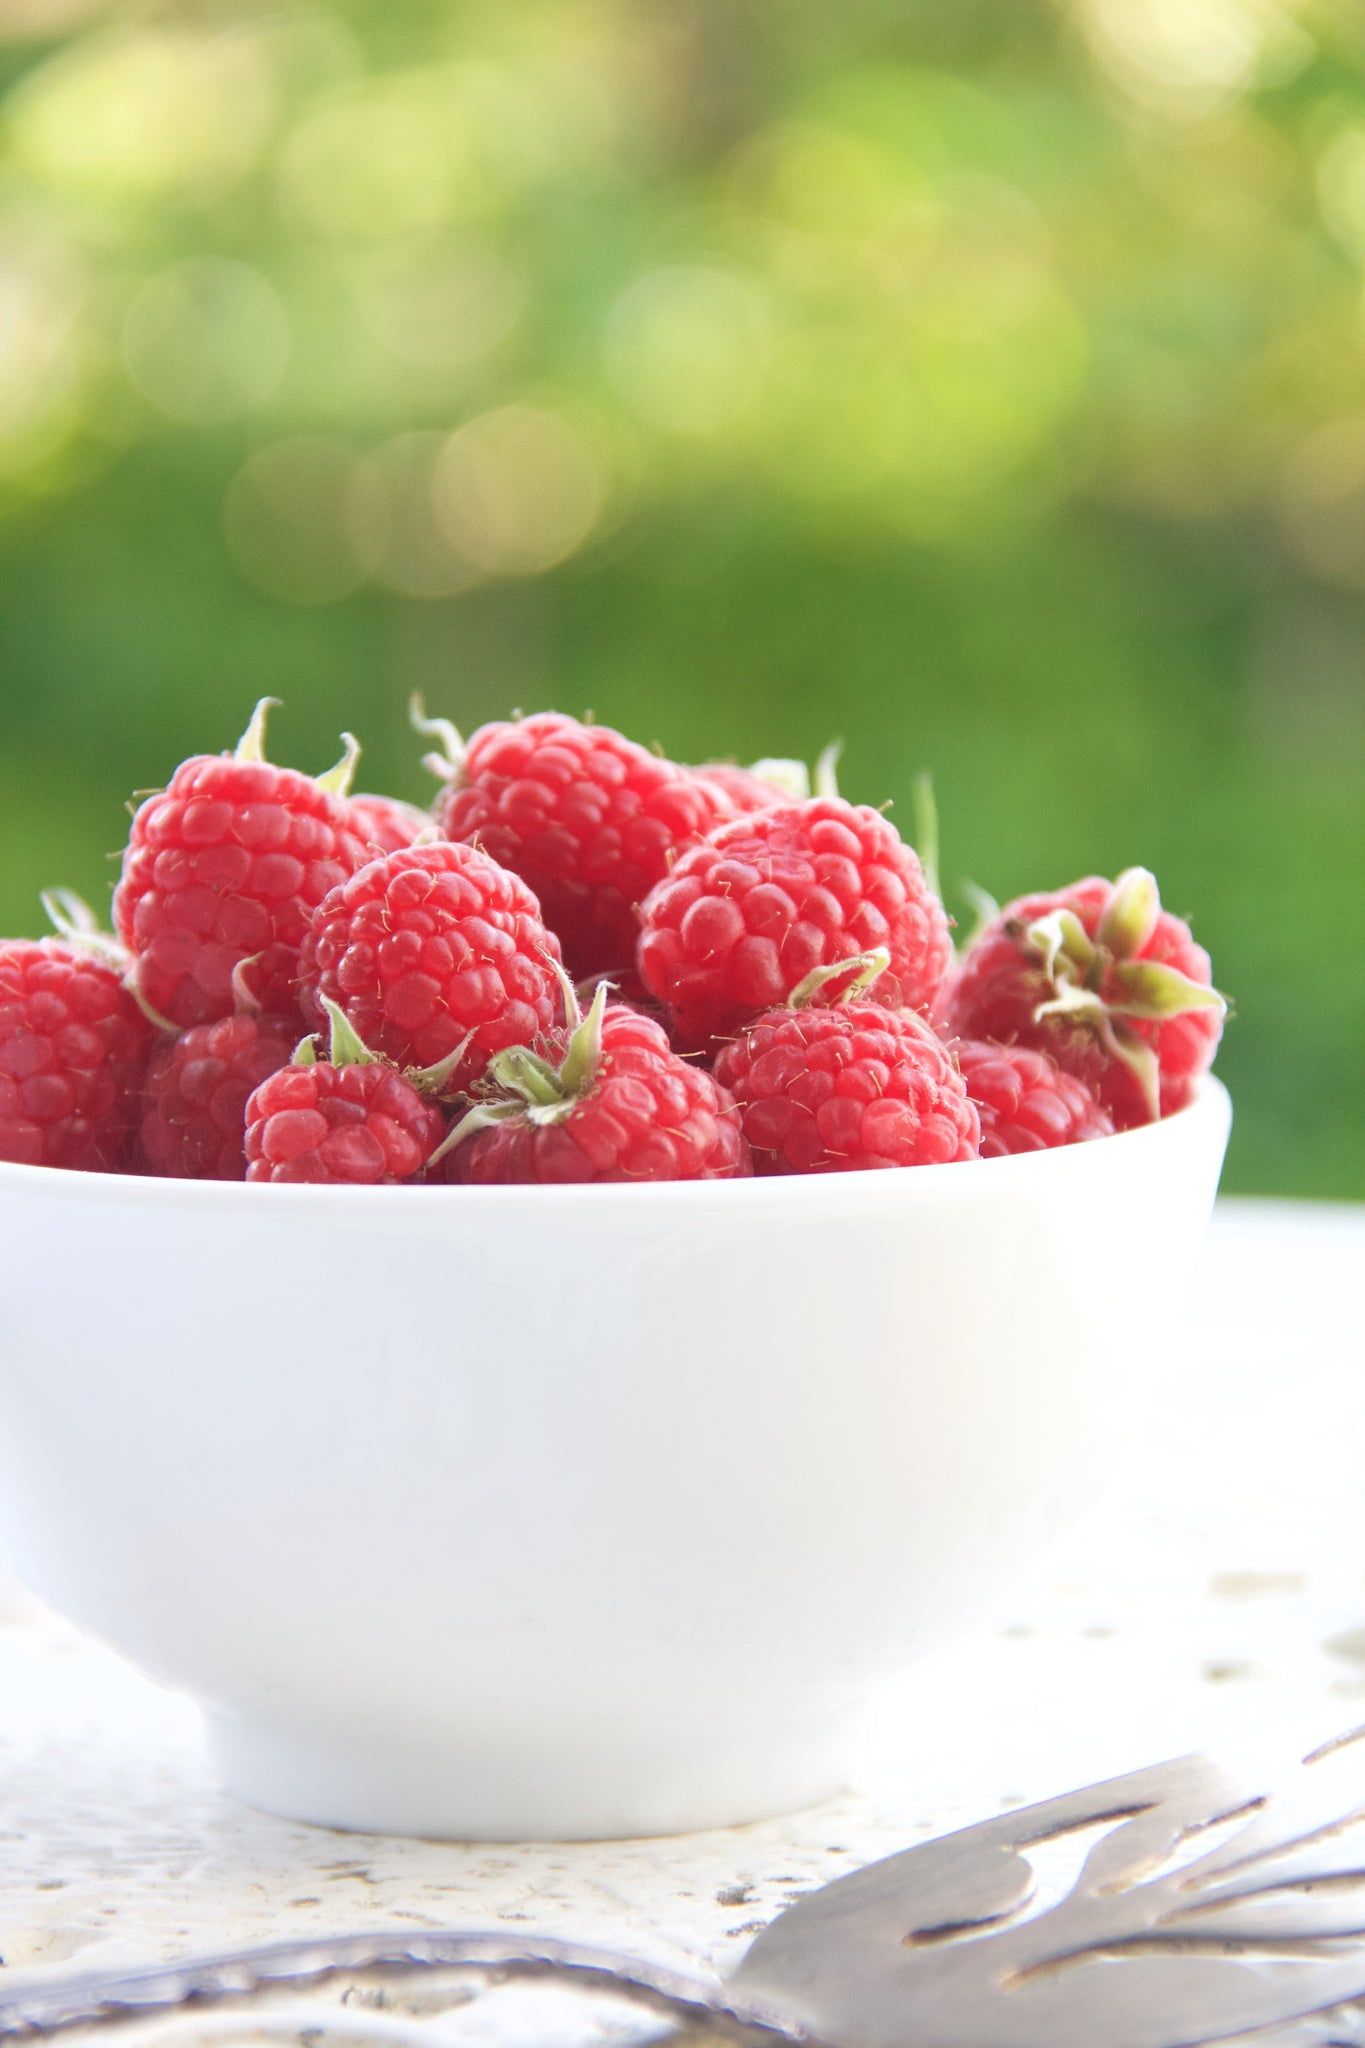 Organic Fresh Raspberries